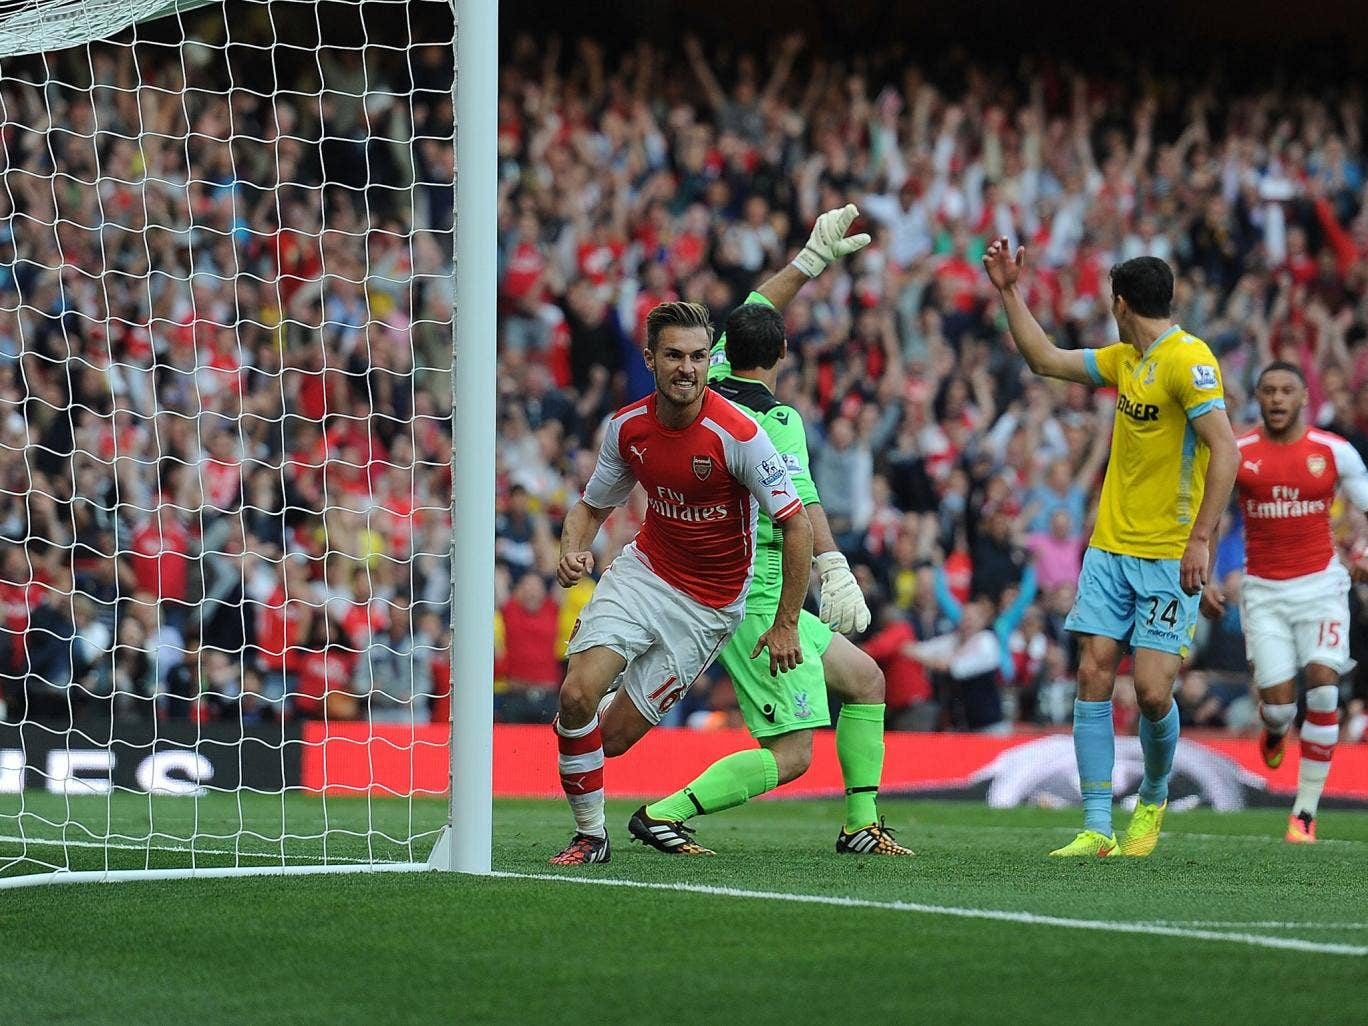 Aaron Ramsey knocks in the winning goal to give Arsenal a 2-1 victory over Crystal Palace